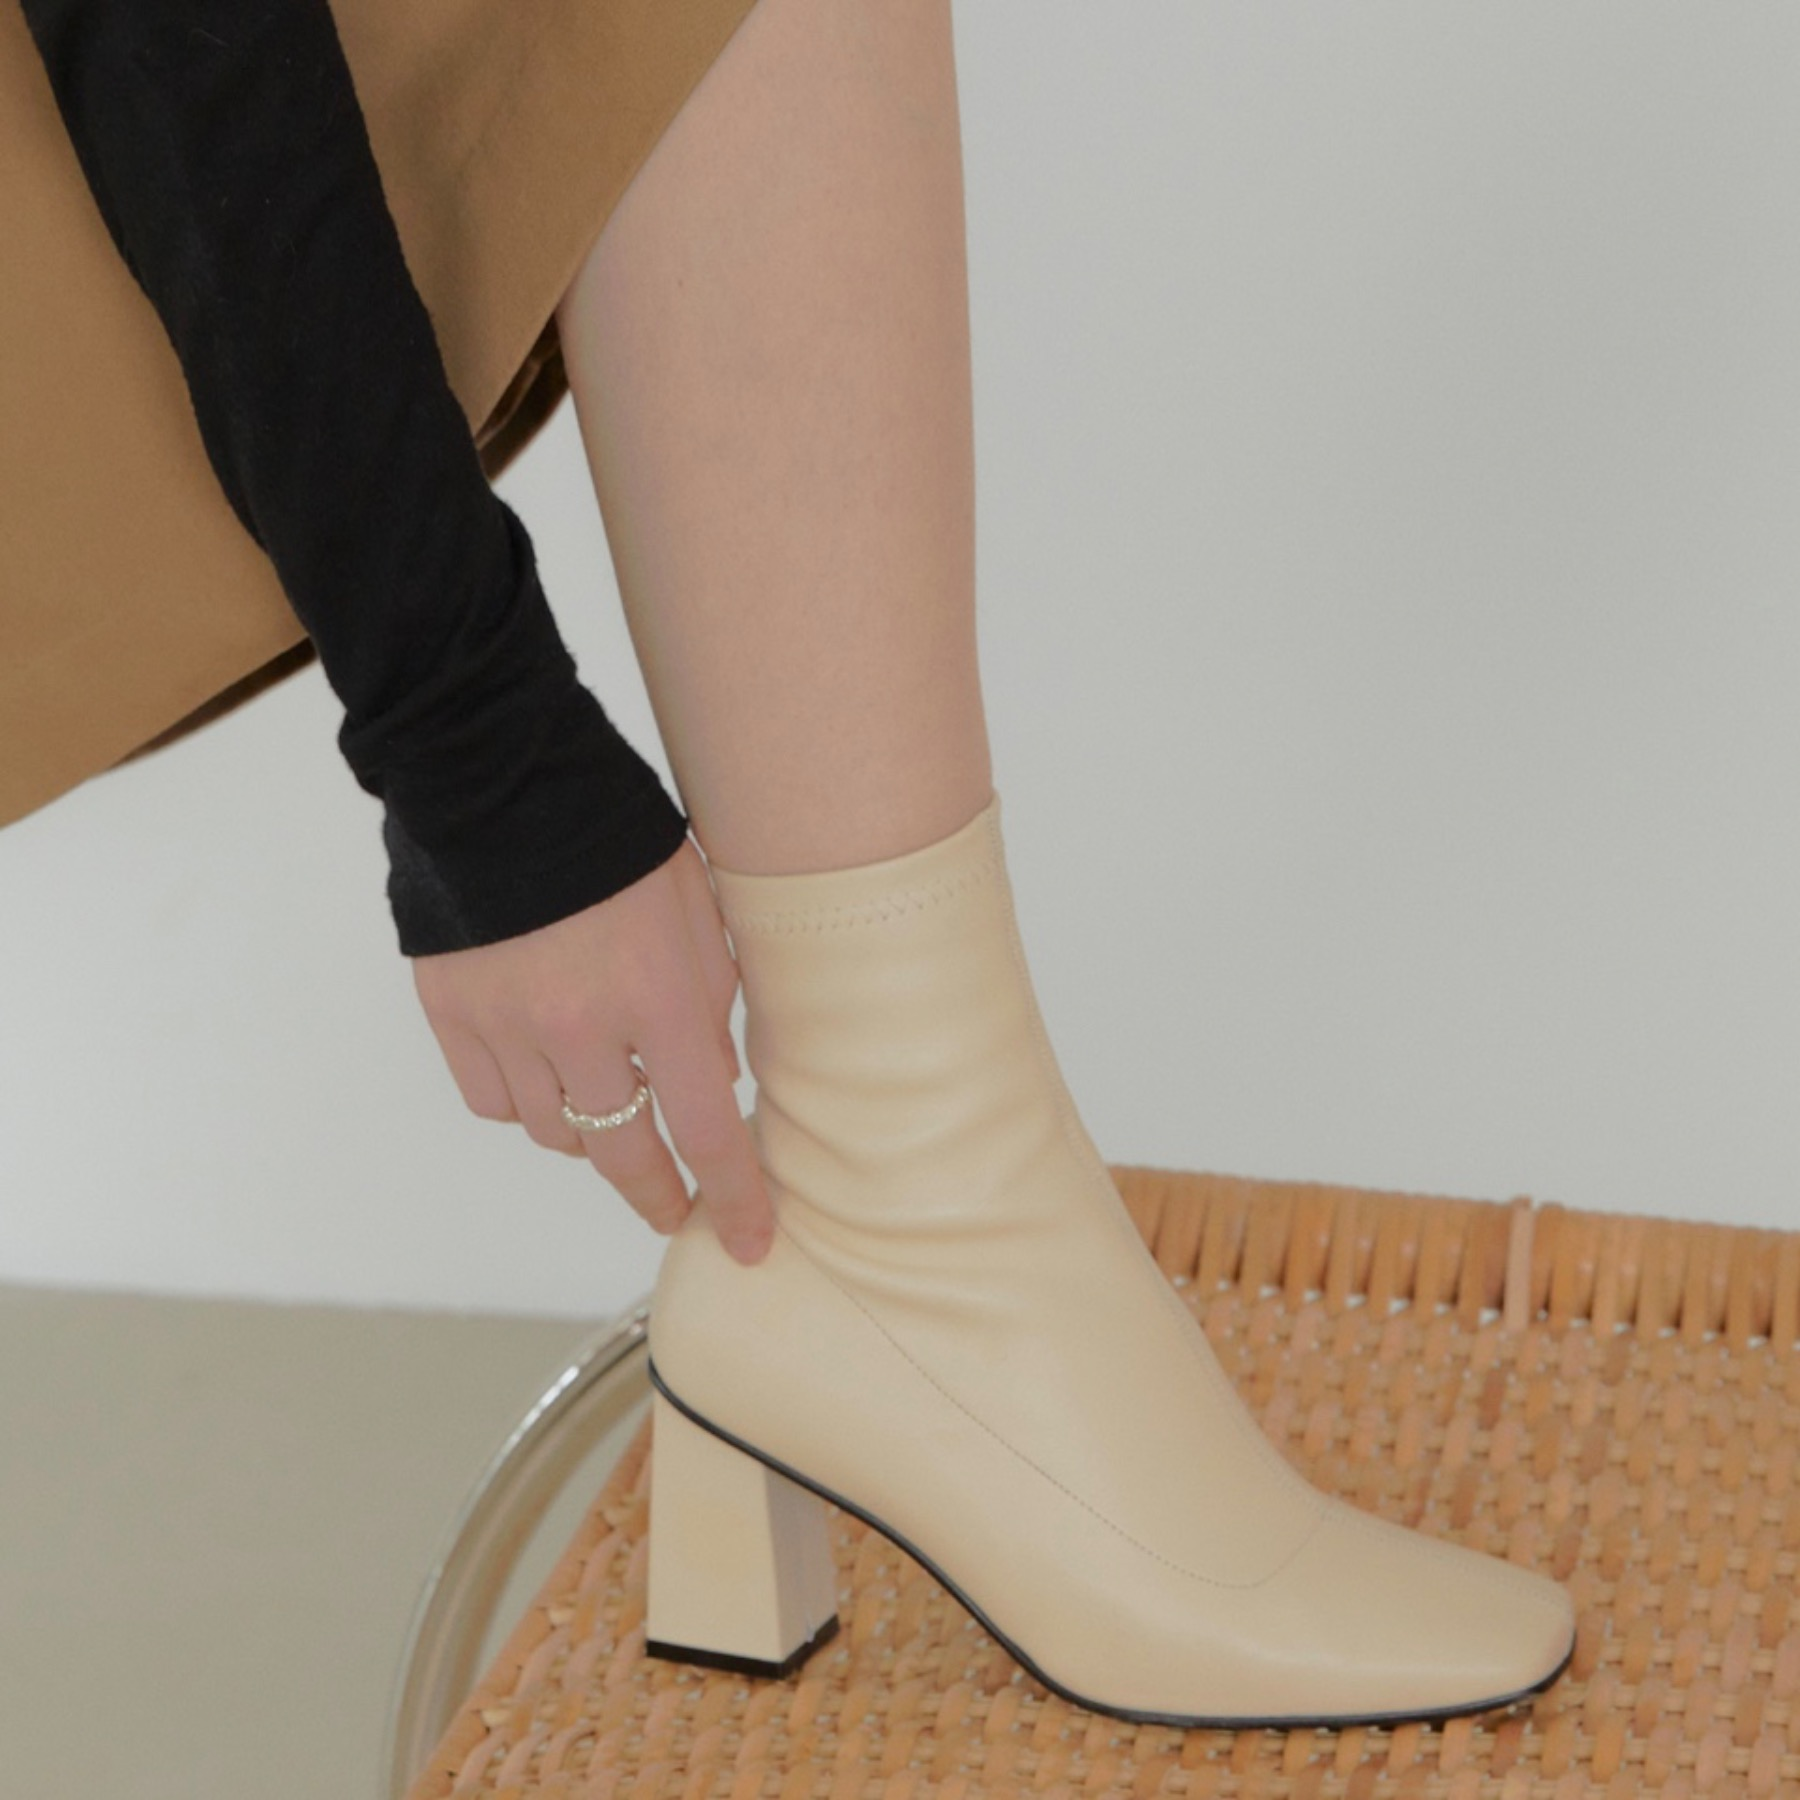 mari ankle boots(2 color)